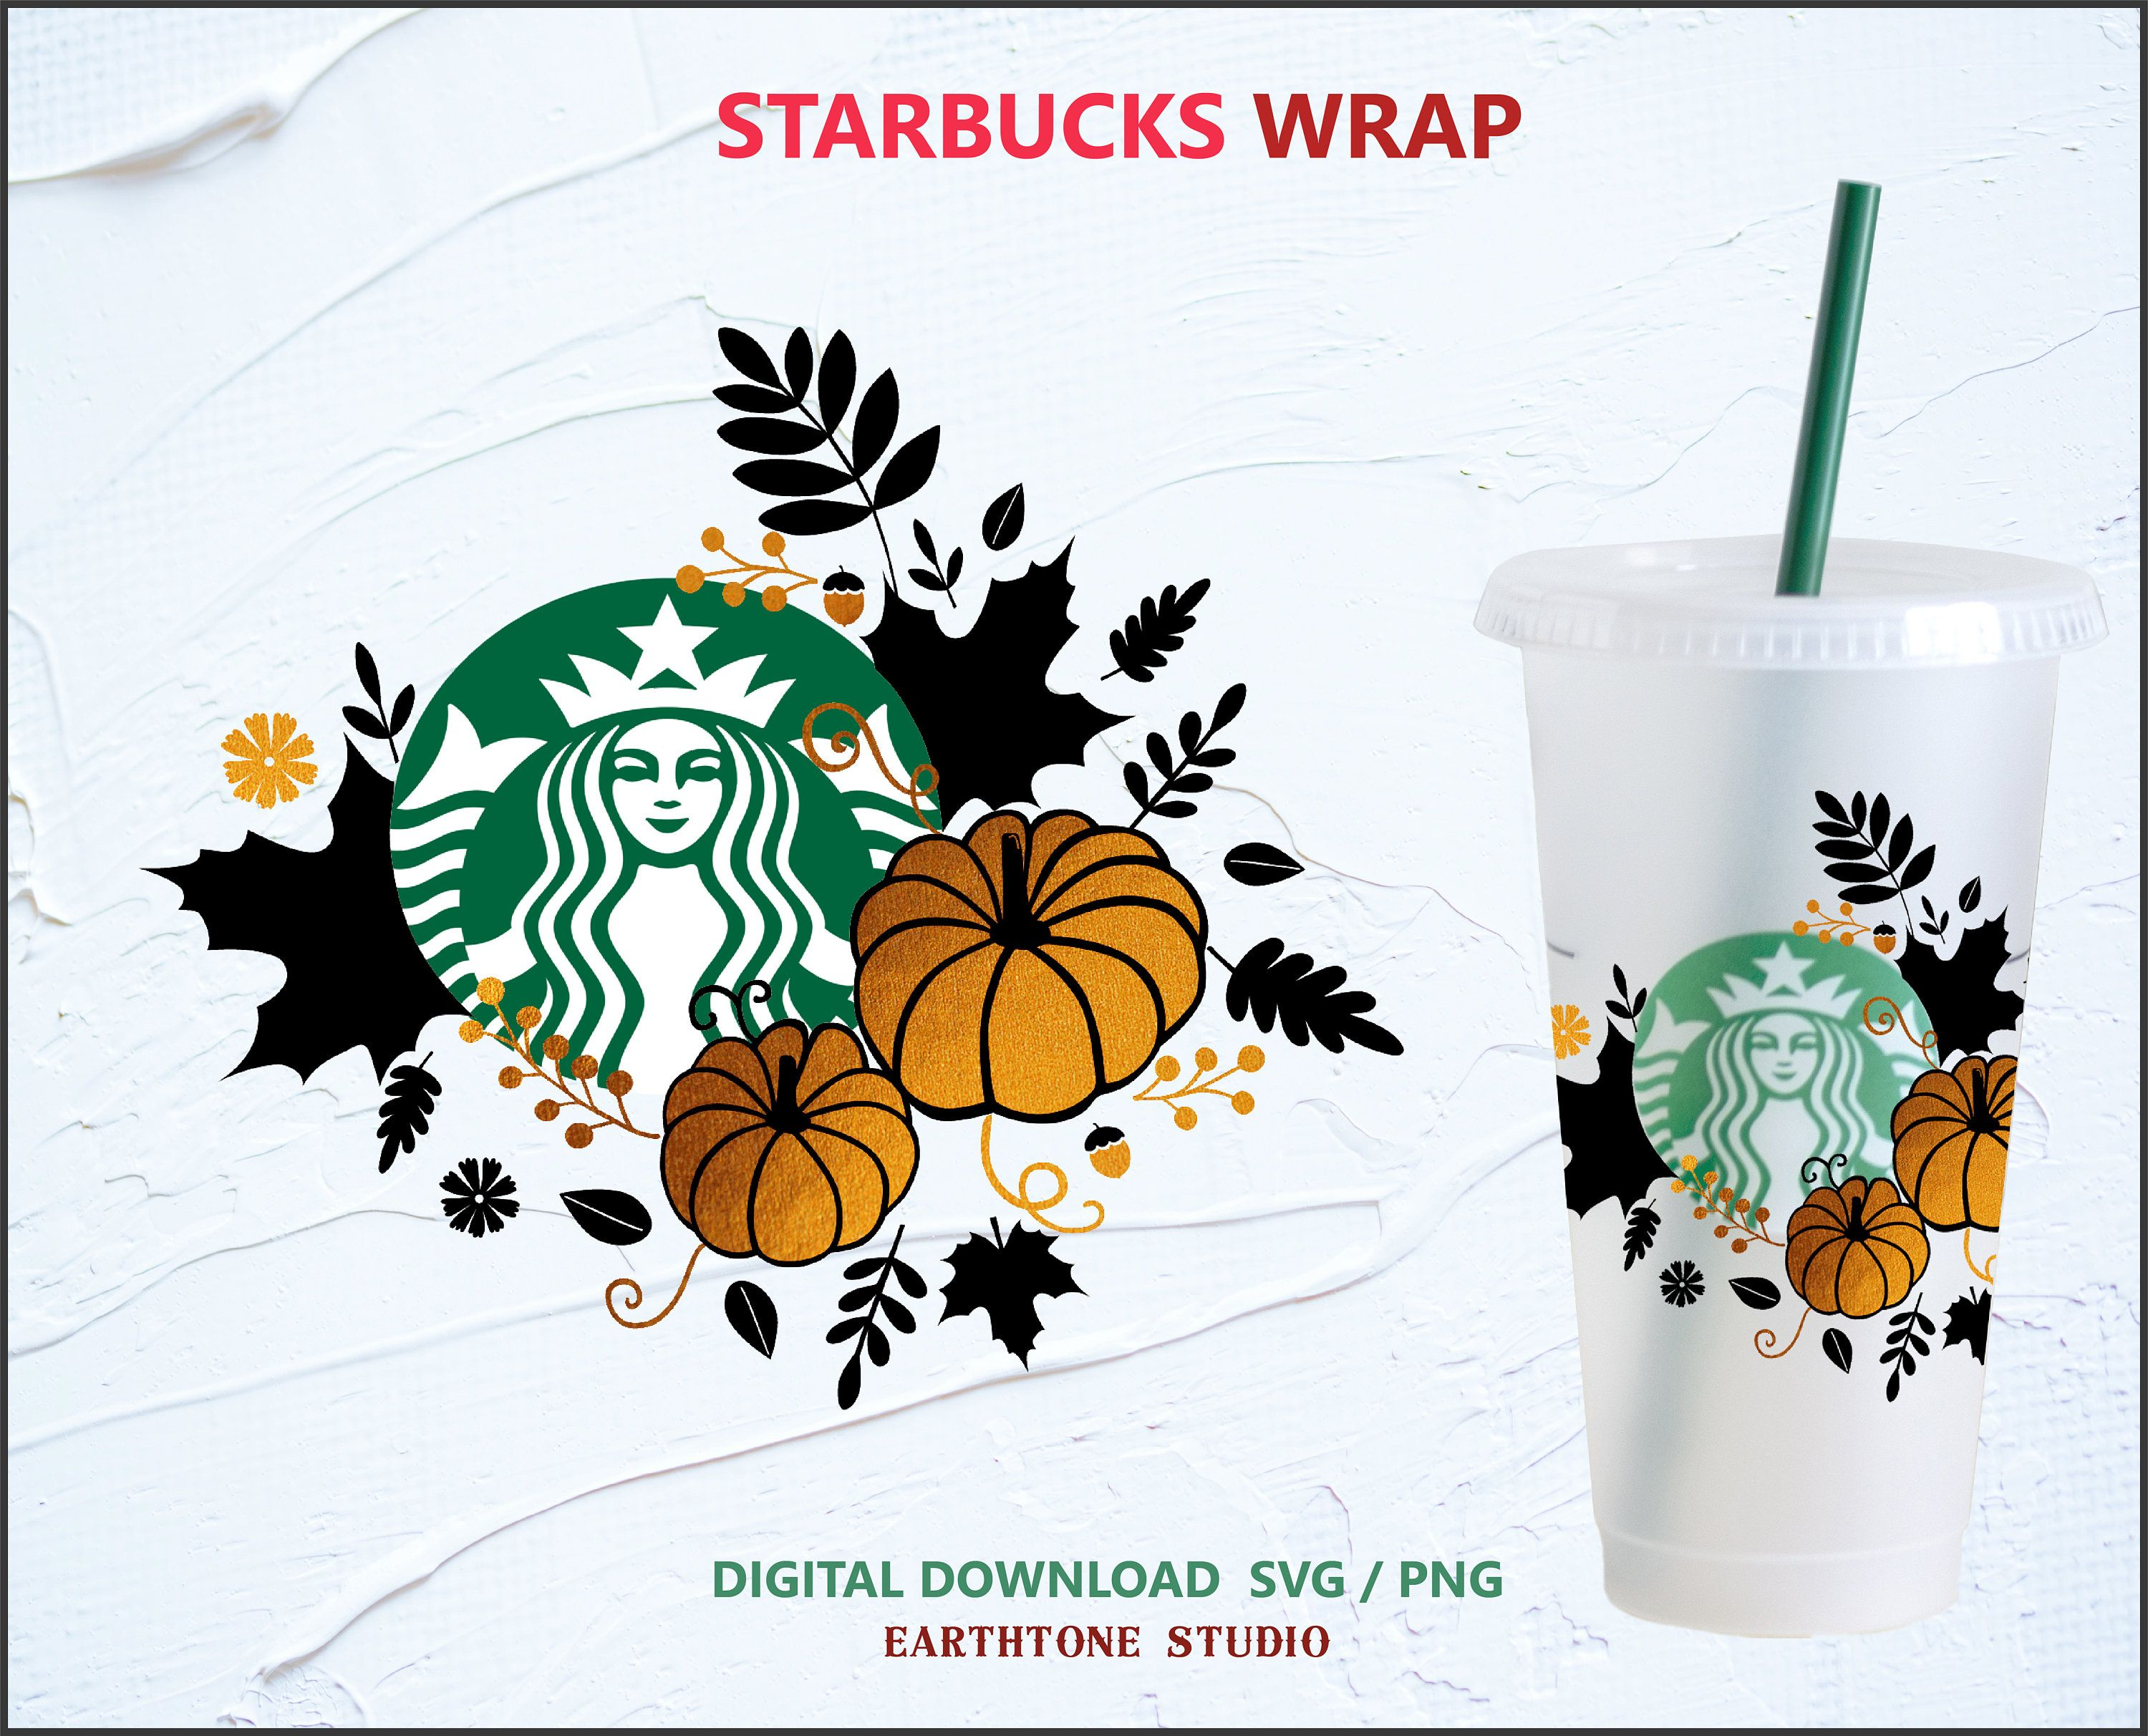 Fall Pumpkin Wrap Svg For Starbucks Venti Cold Cup 24 Oz Etsy In 2020 Starbucks Fall Starbucks Starbucks Halloween